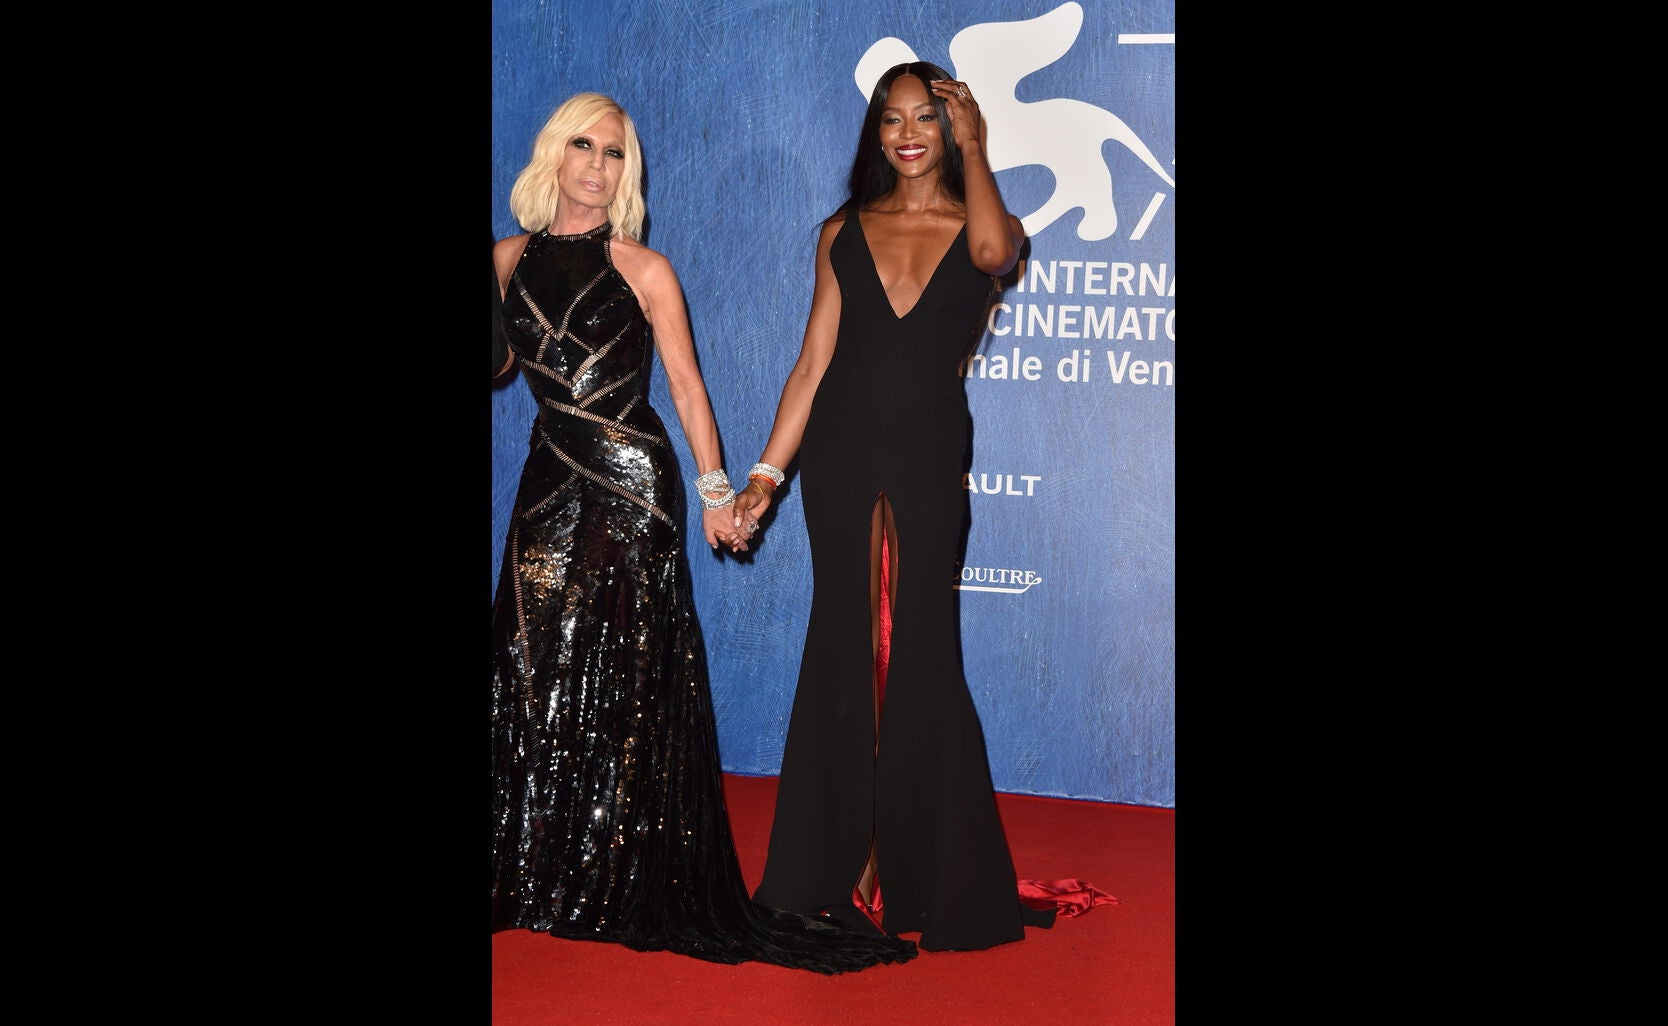 Donatella Versace and Naomi Campbell in Venice 2016